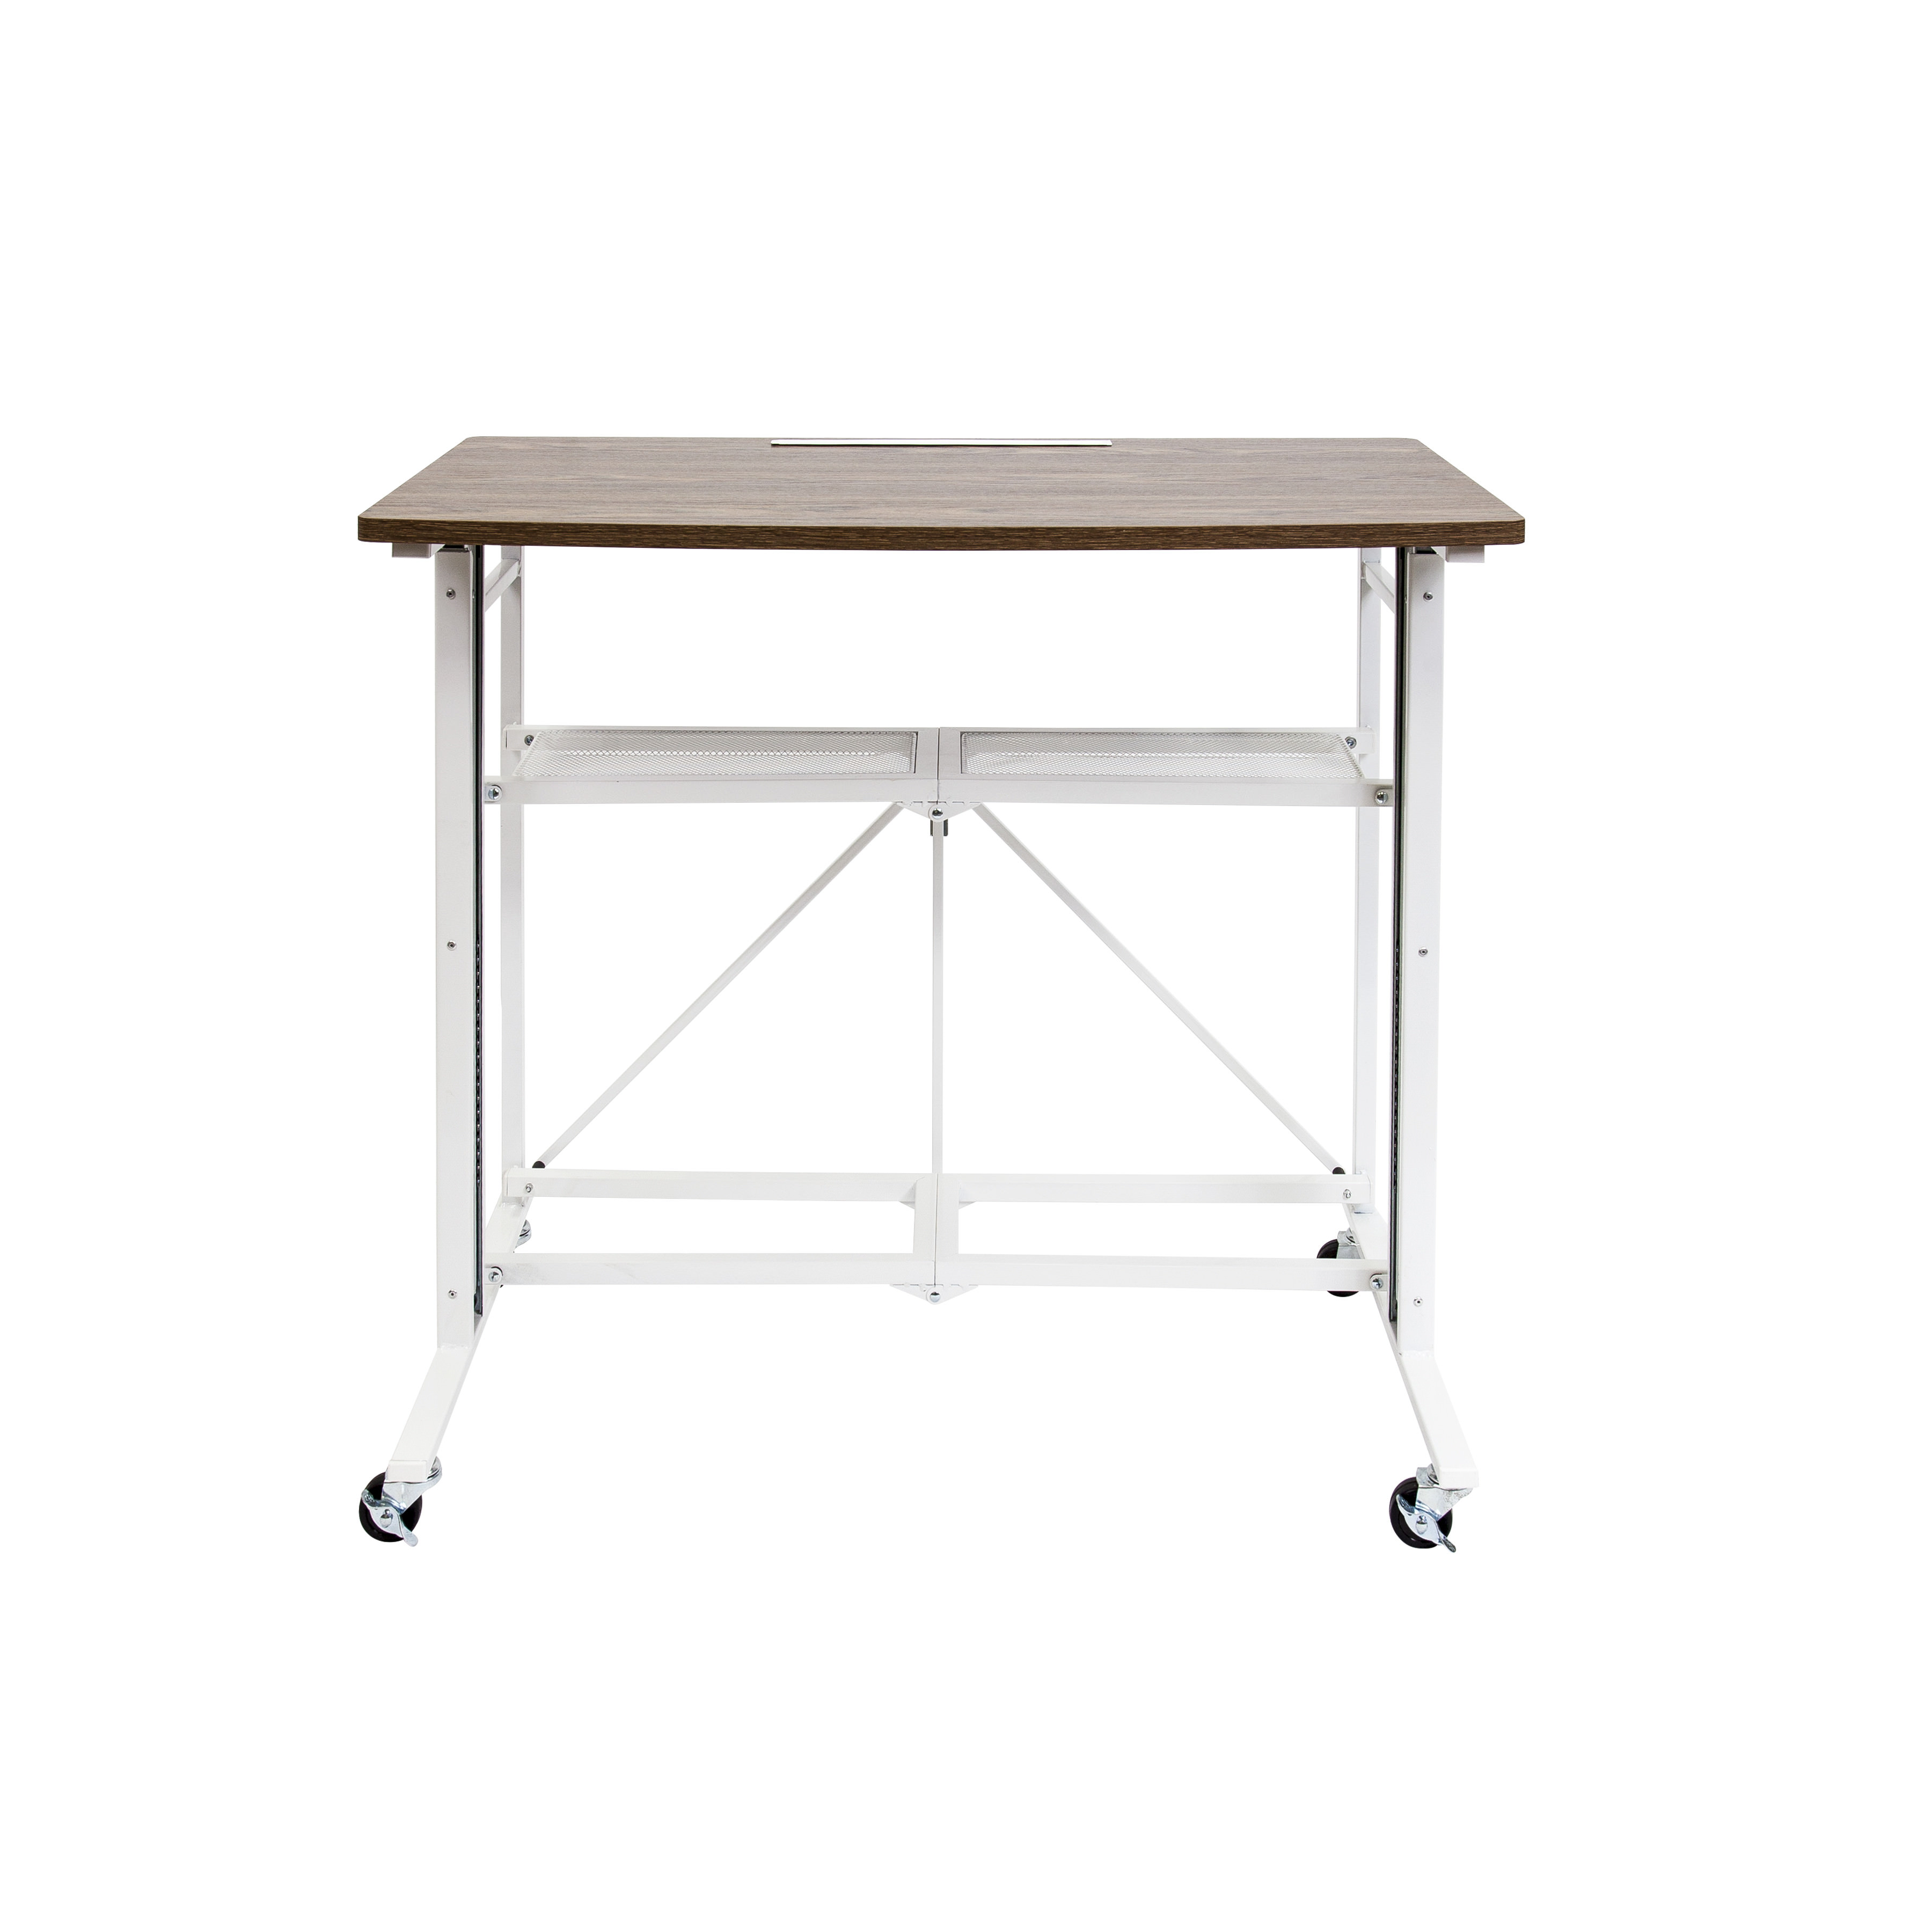 UP2U Adjustable Computer Desk/Craft Table